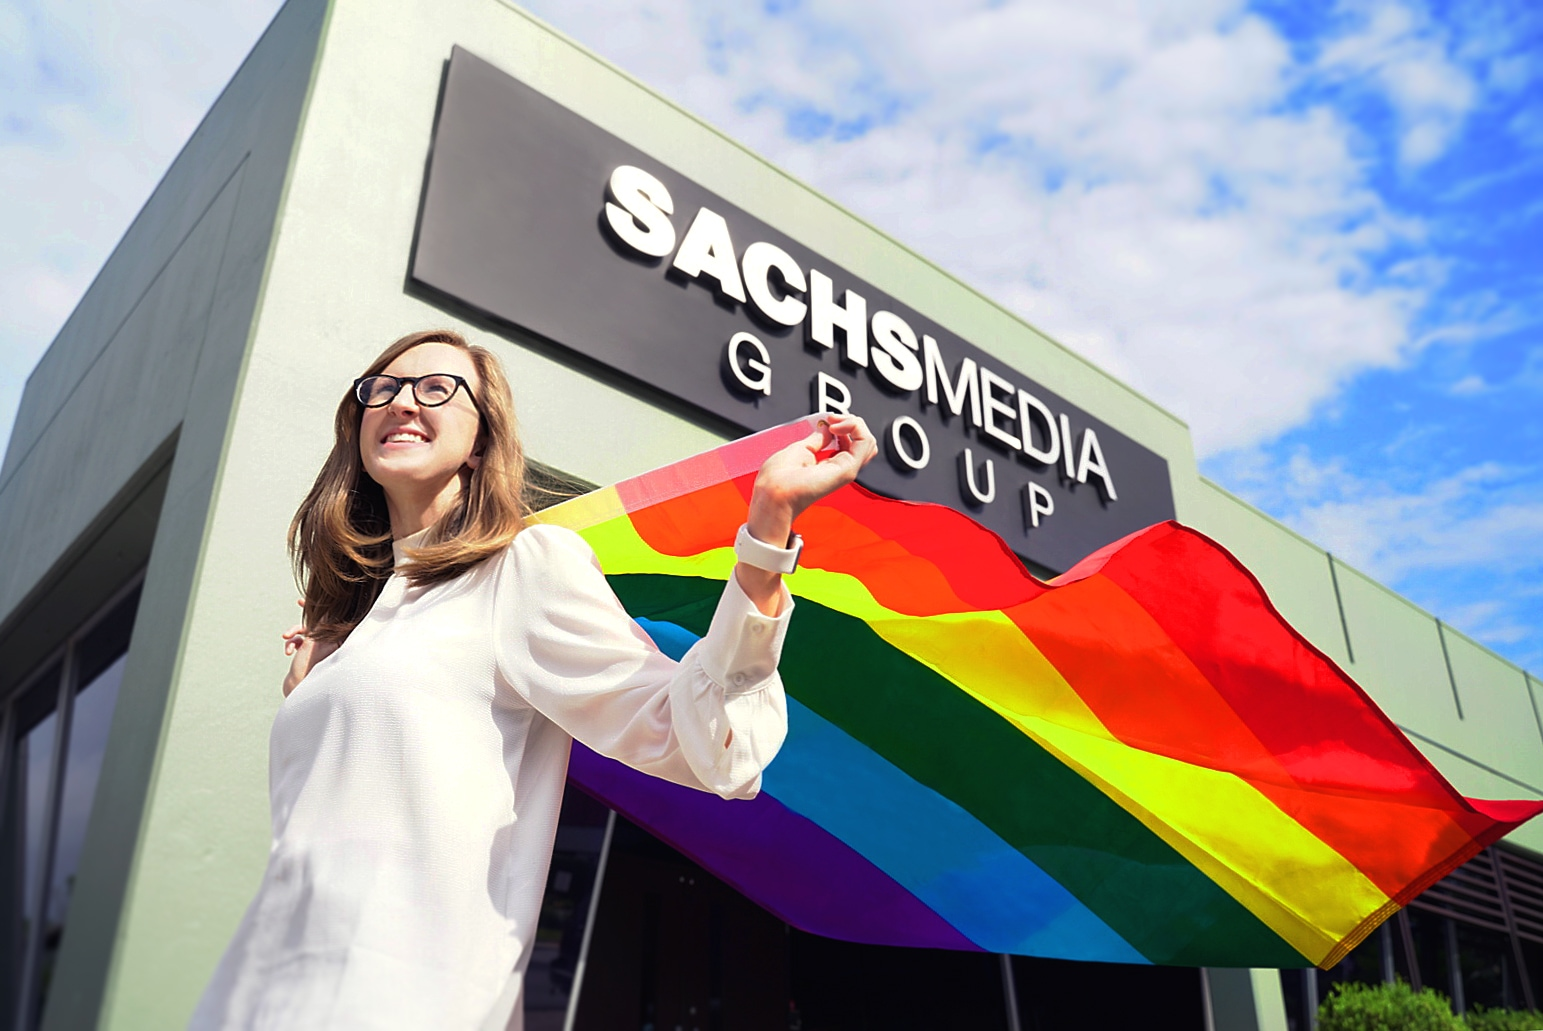 Allison P. Couch, author and Sachs Media Group employee celebrates Pride Month with LGBTQ pride flag